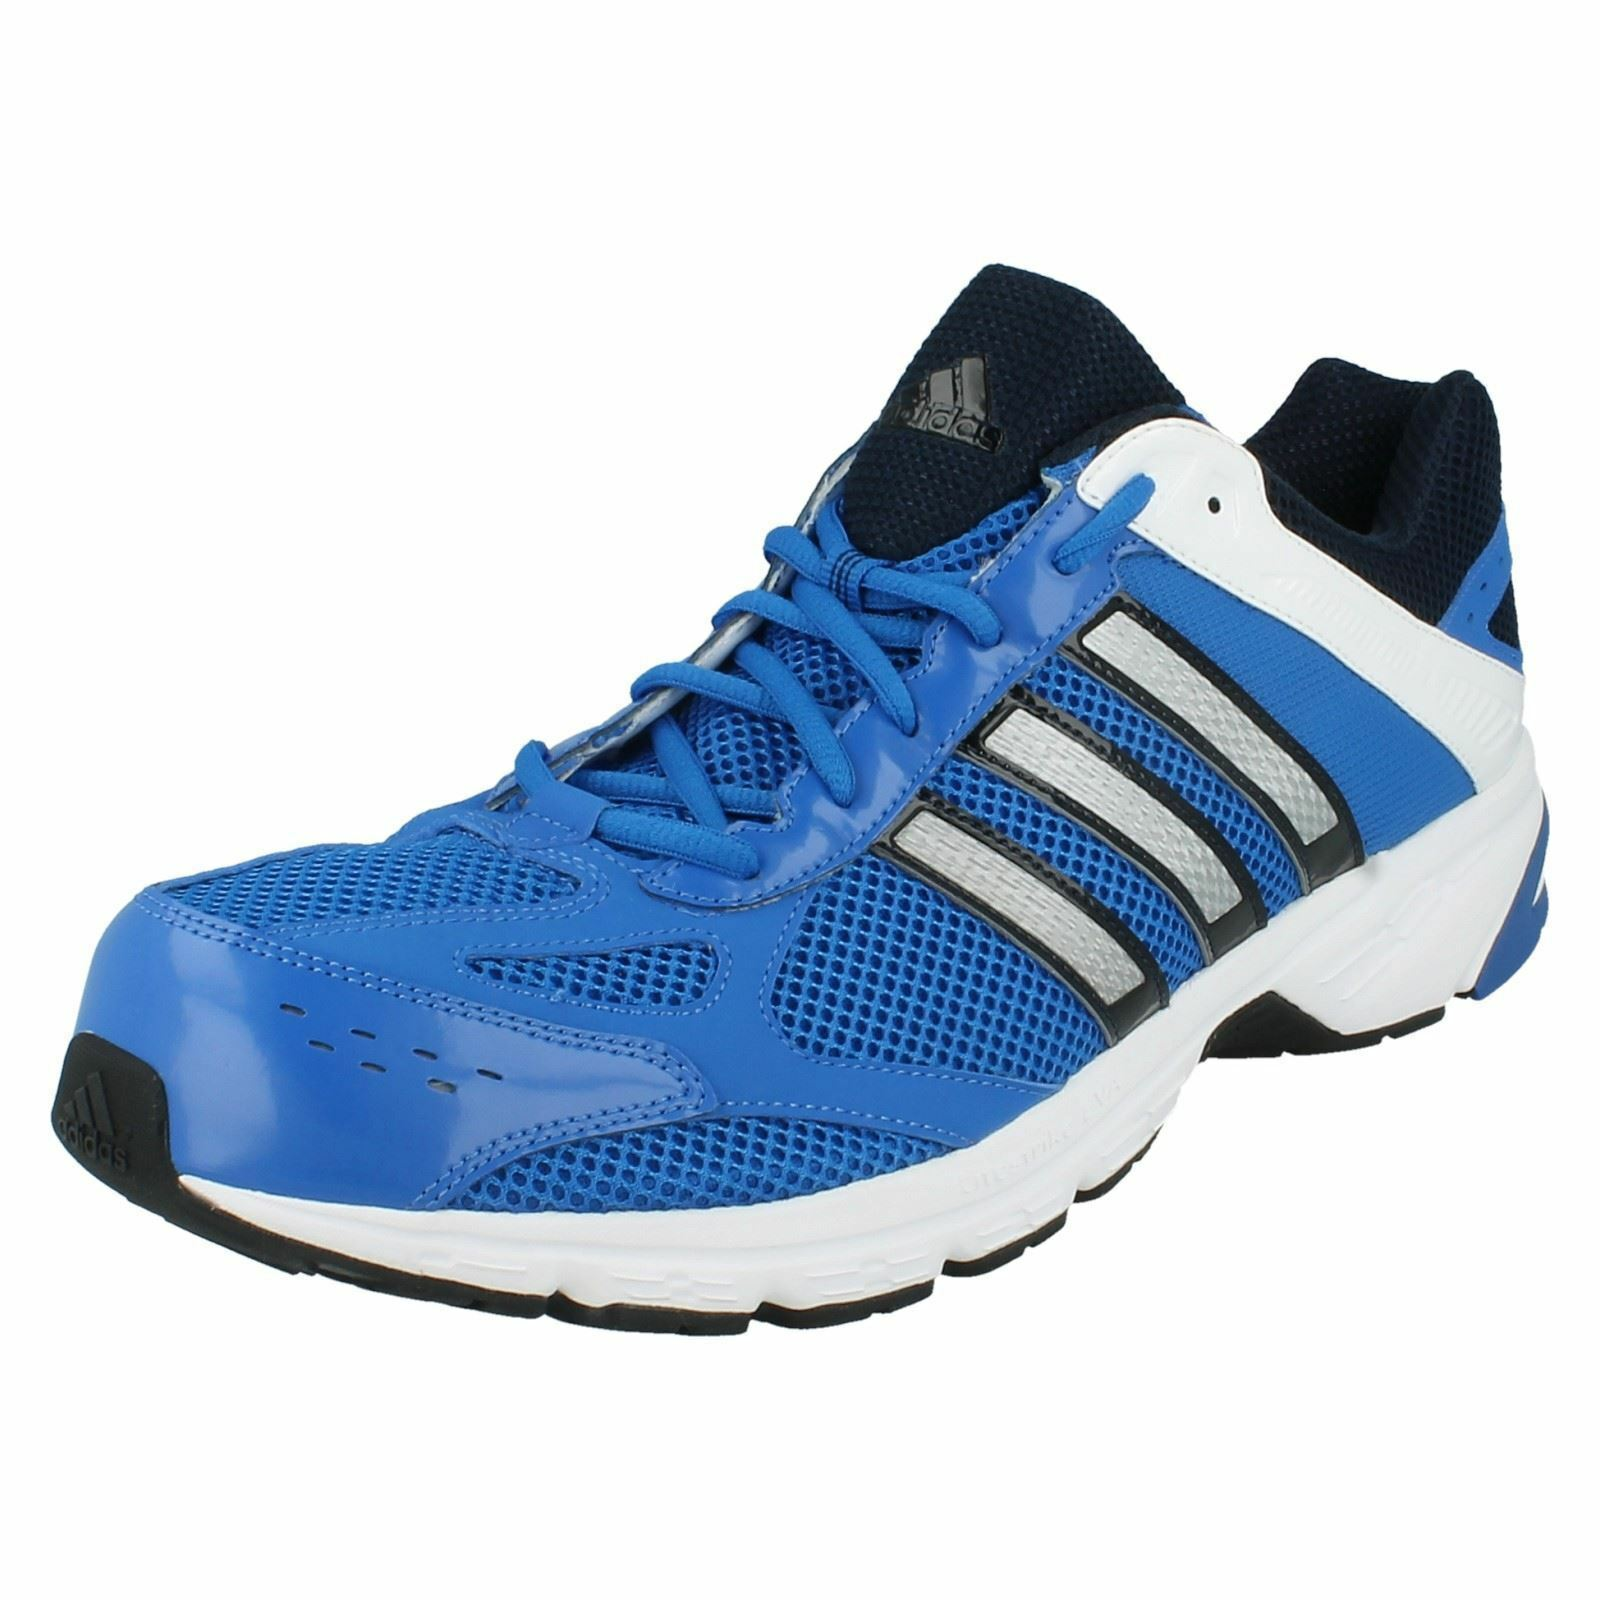 Mens Adidas Trainers  - Duramo 4M best-selling model of the brand